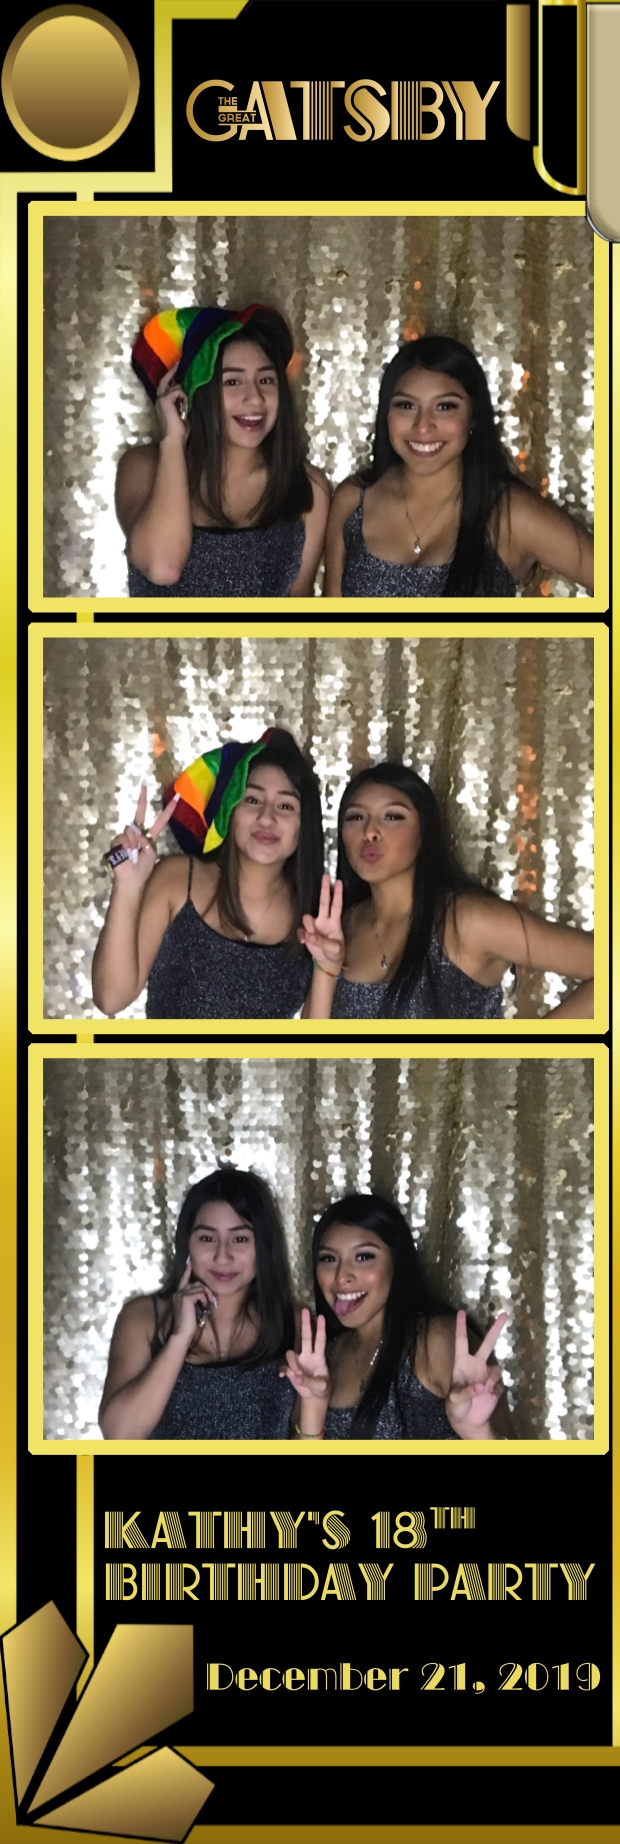 Photo Booth Strip The Best DJ in Houston for FUN Dancing!!